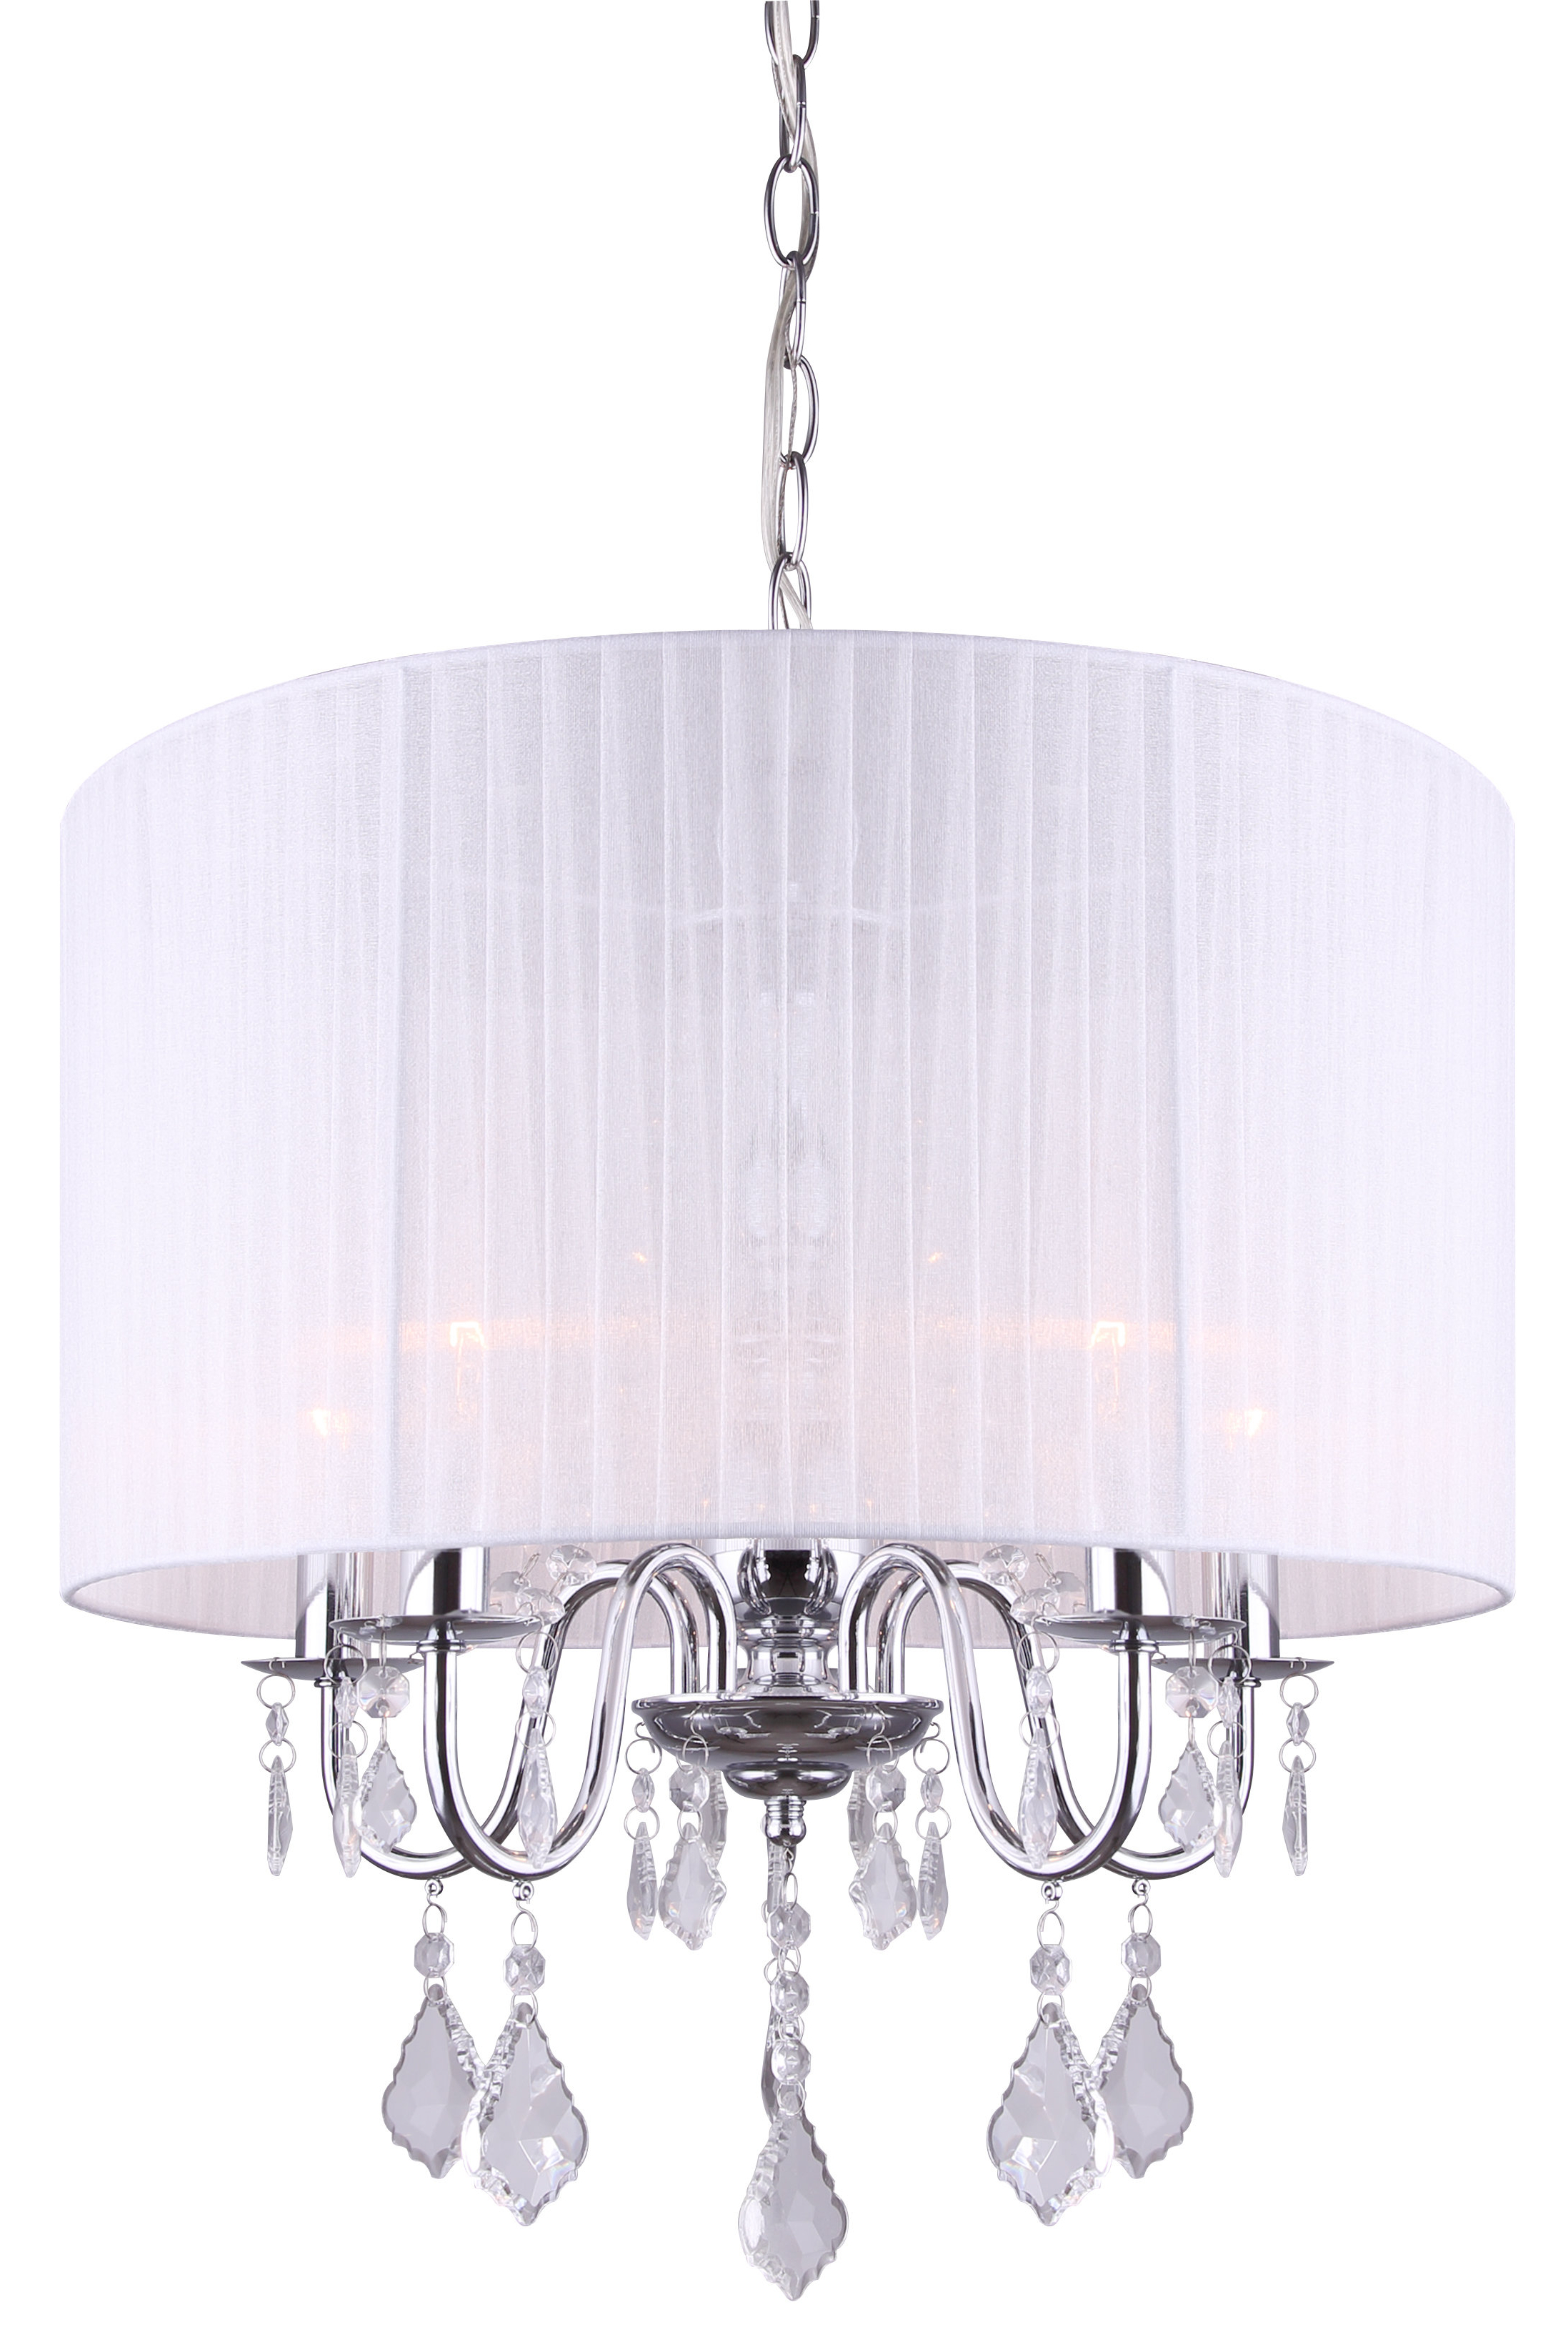 Newest Willa Arlo Interiors Buster 5 Light Drum Chandelier Regarding Buster 5 Light Drum Chandeliers (Gallery 2 of 20)